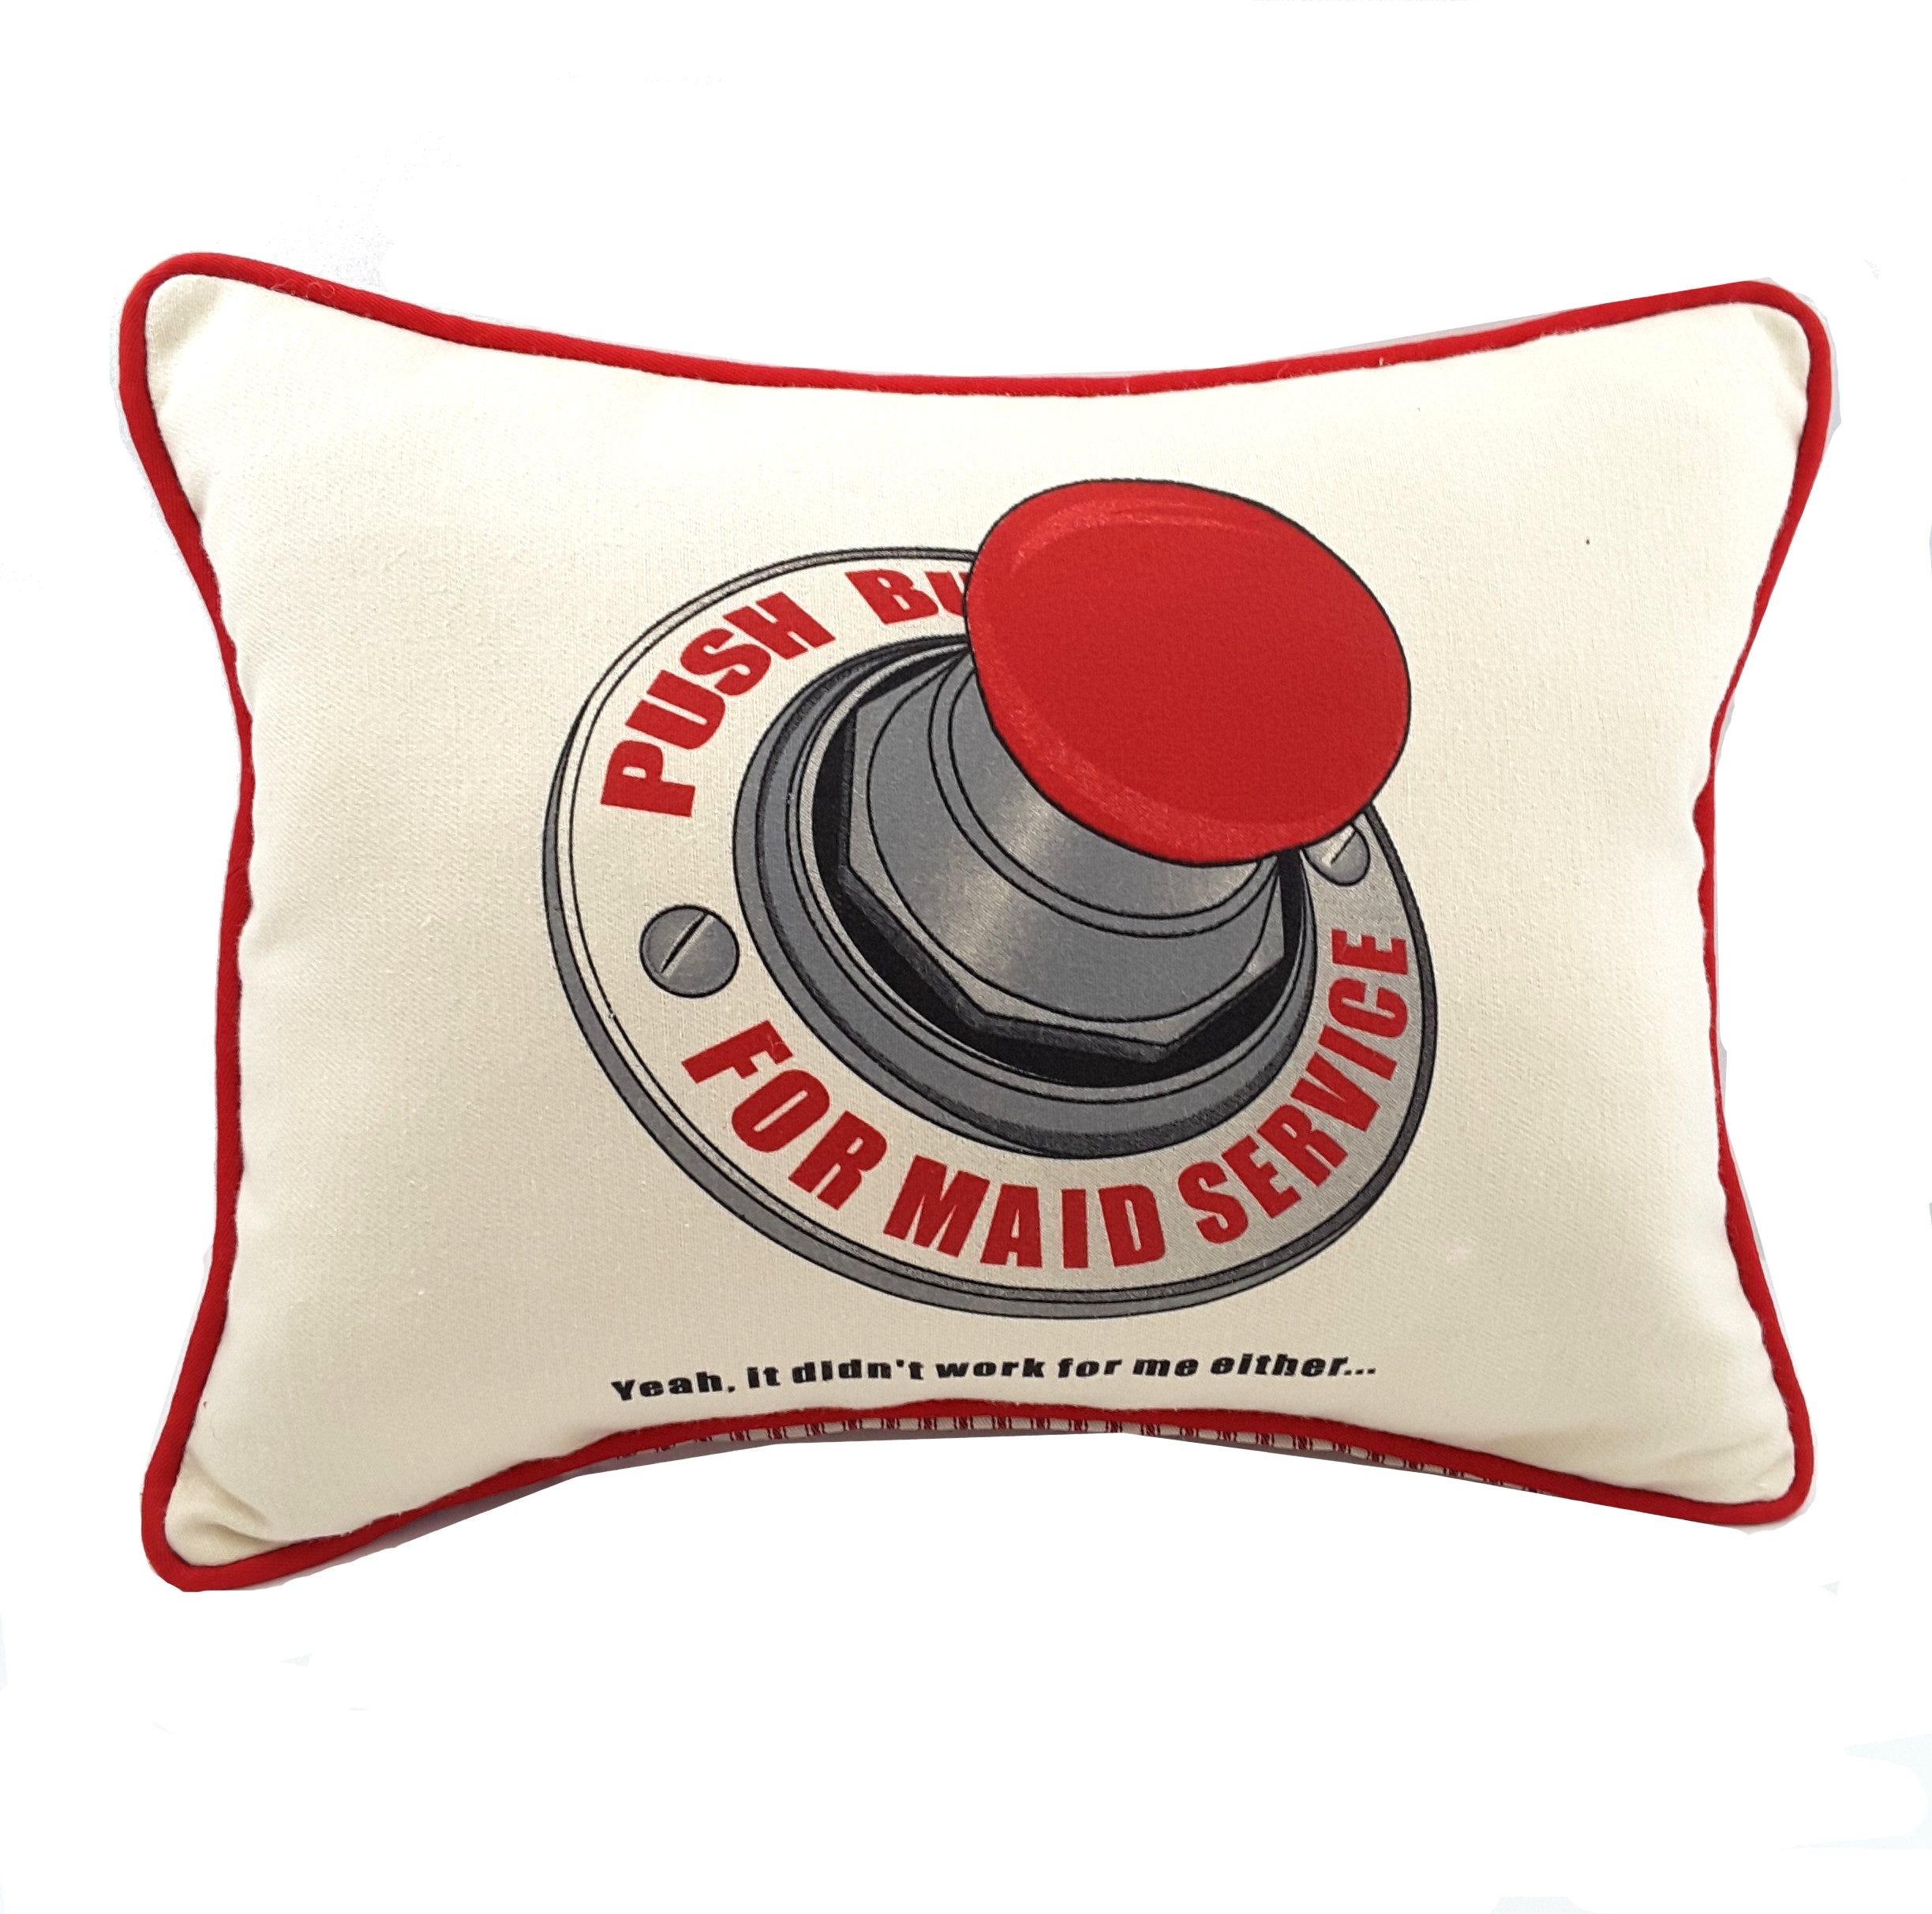 Natural Push Button for Maid Service pillow with red piping